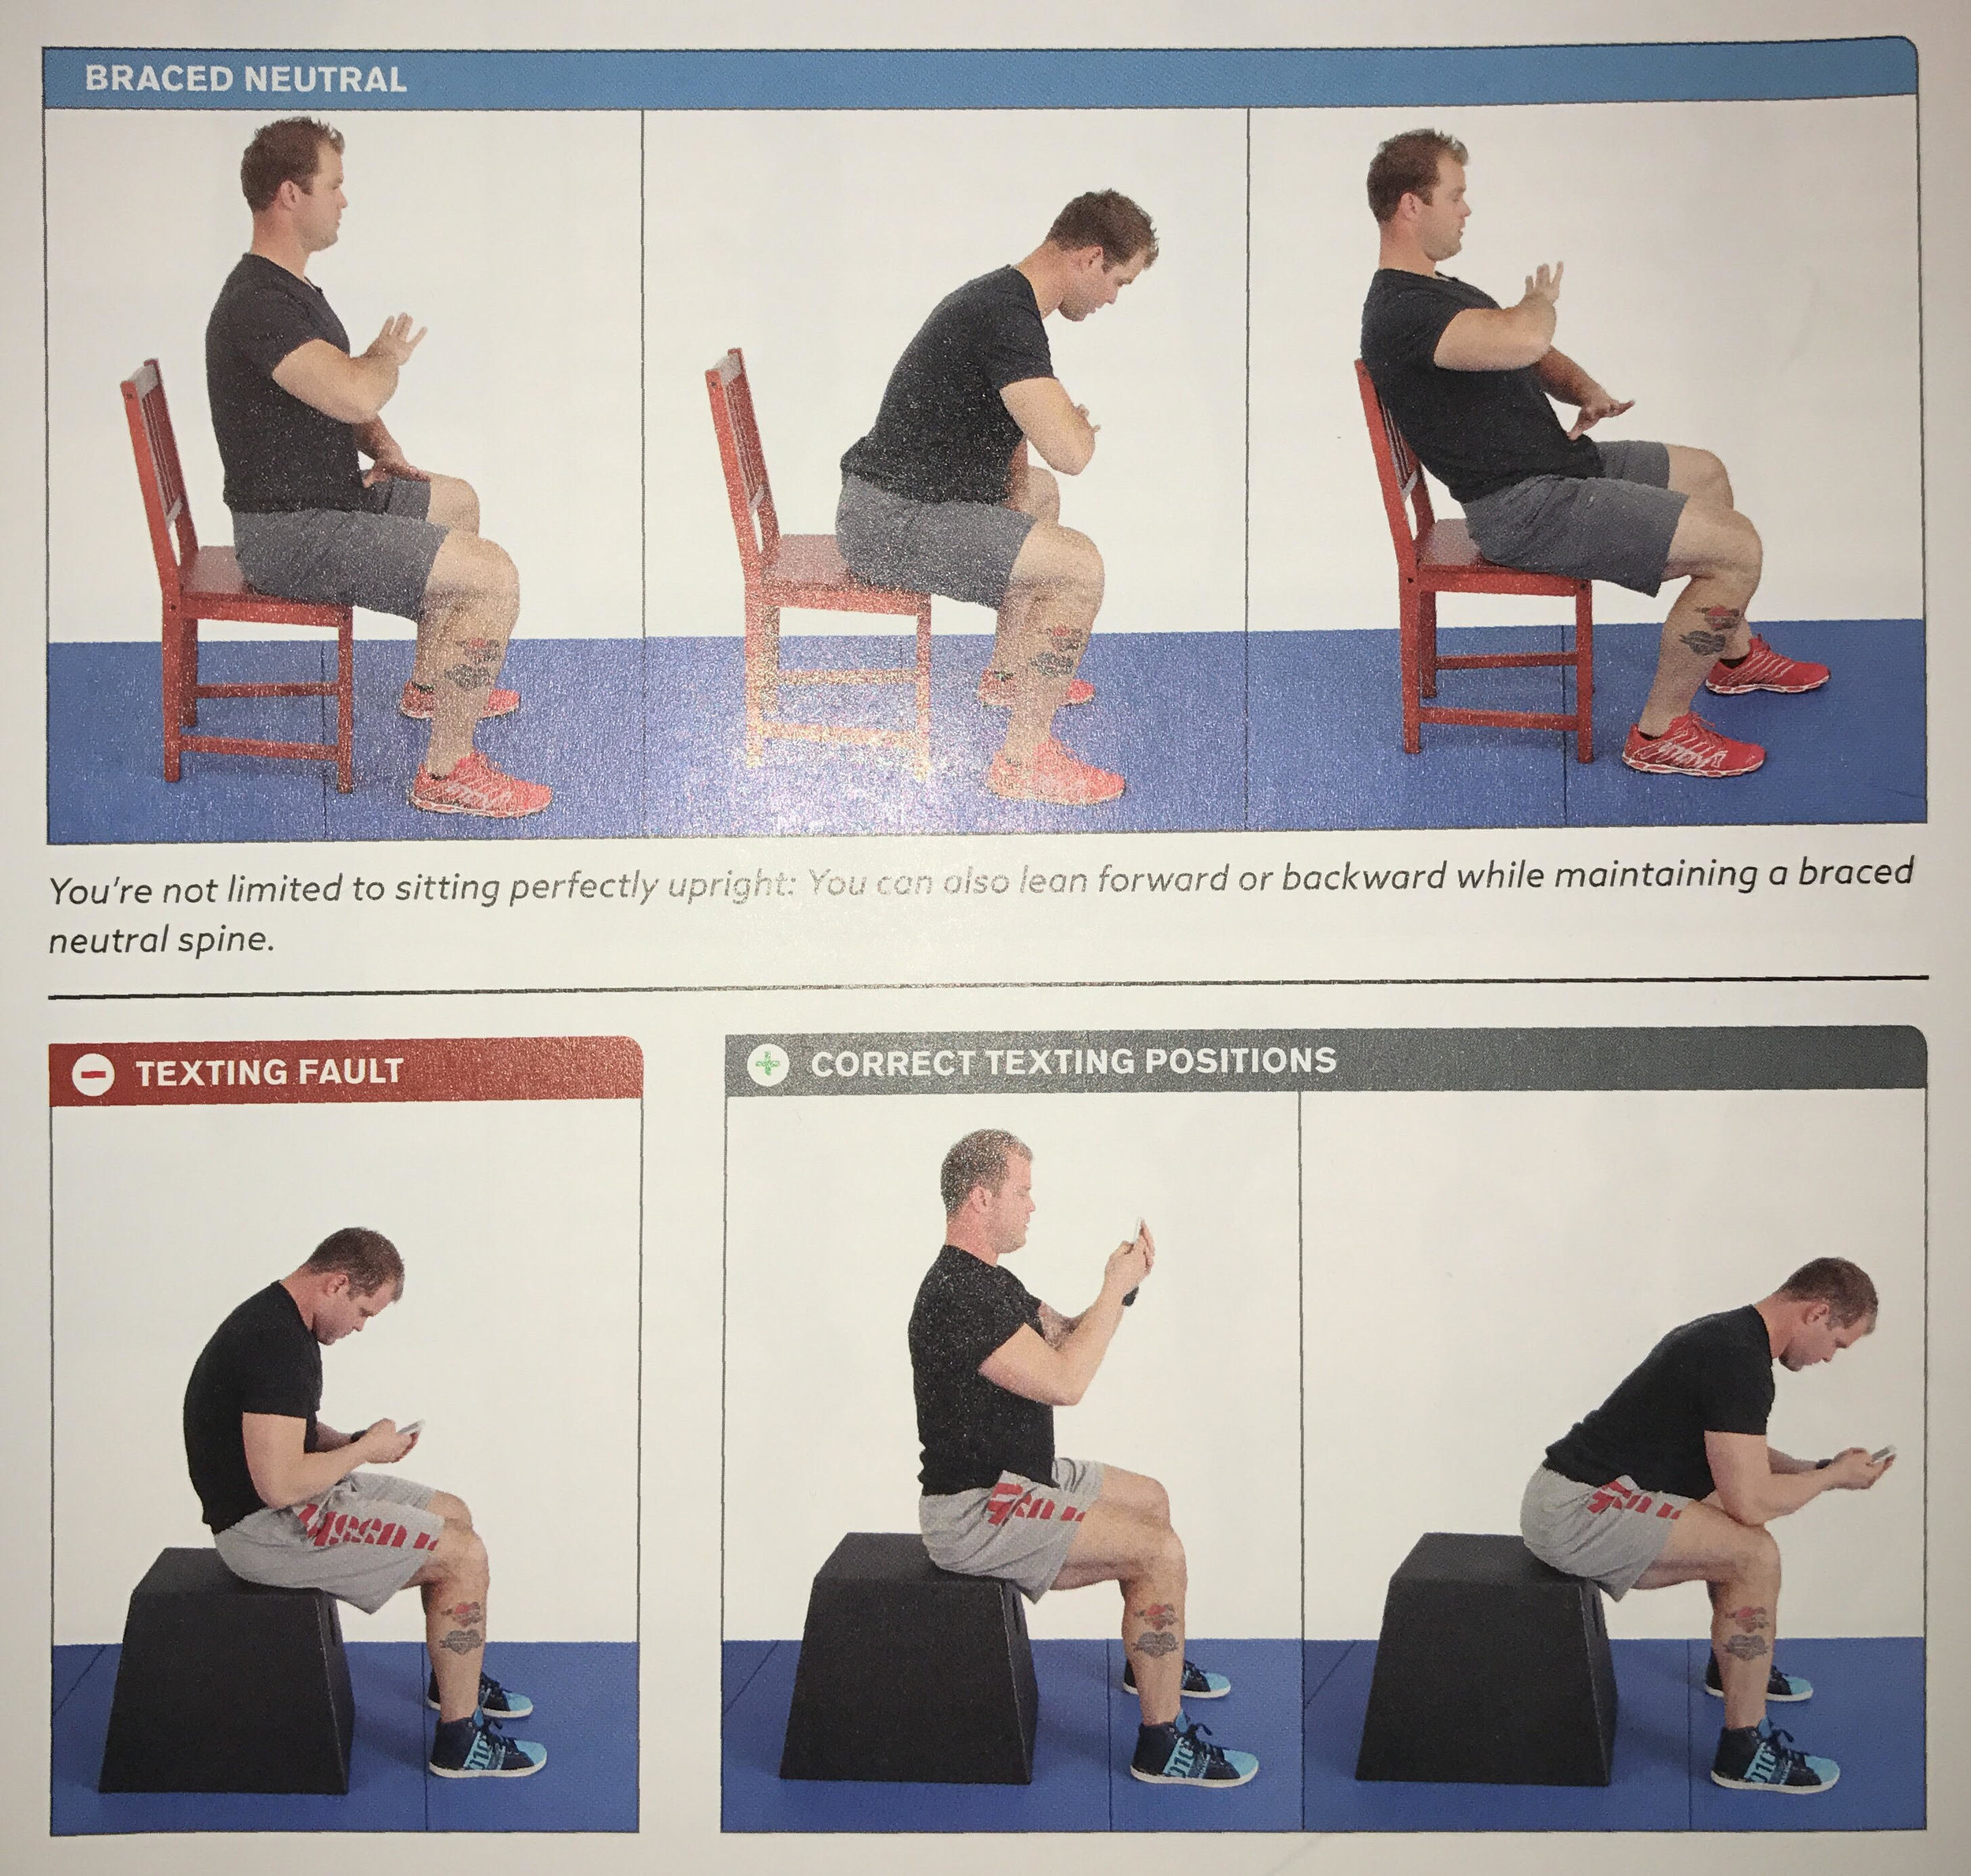 Image 5: Braced Neutral Sitting and Texting Positions